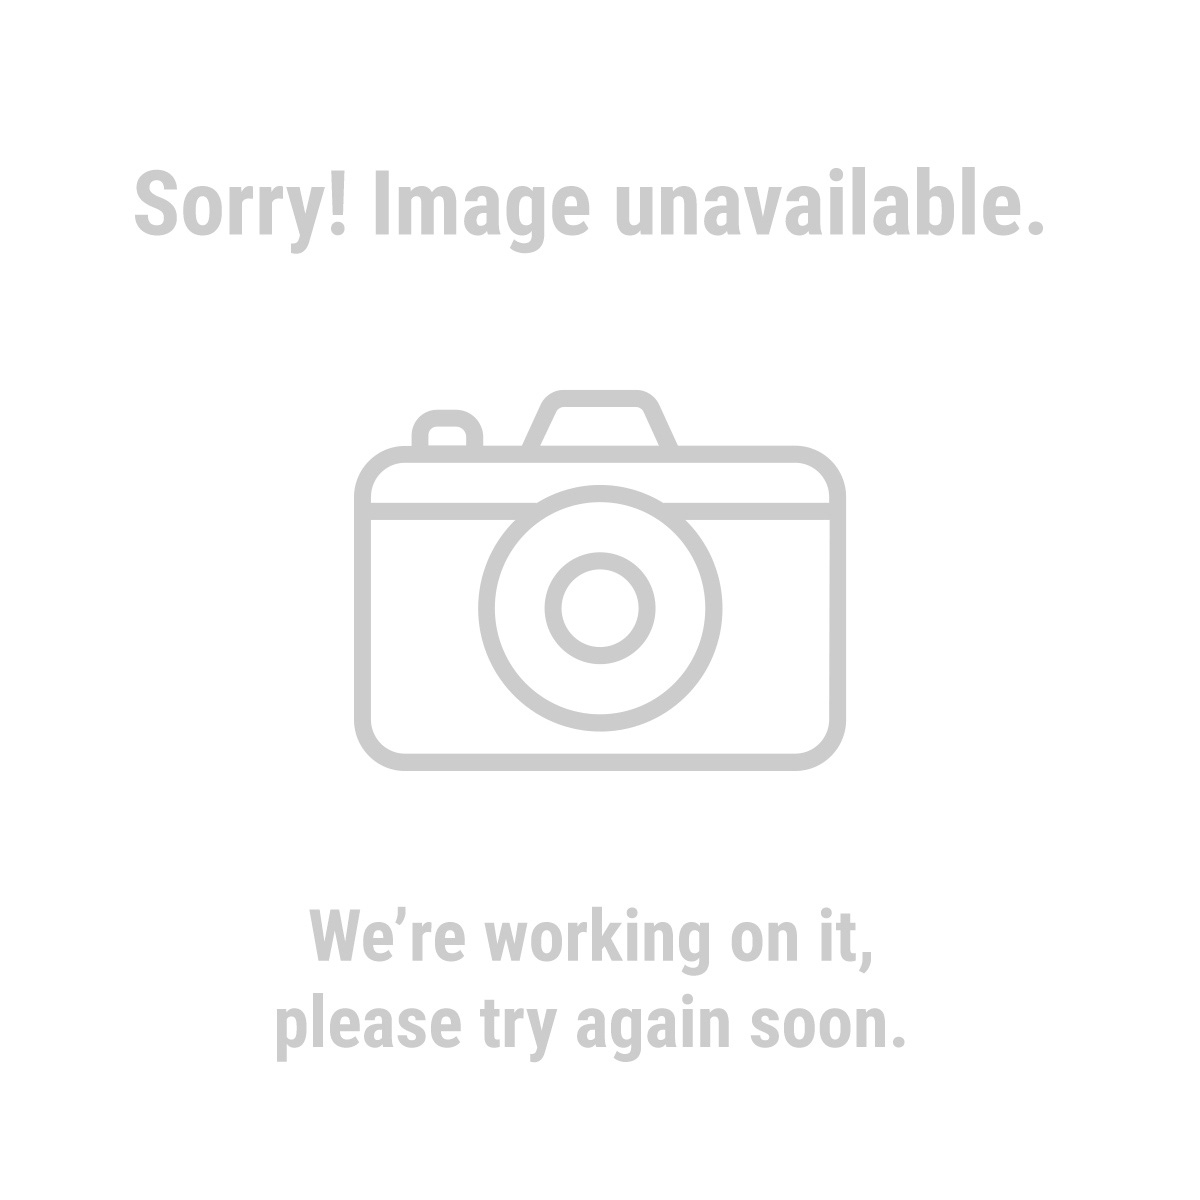 Vanguard 62920 25 ft. x 14 Gauge Indoor/Outdoor Extension Cord